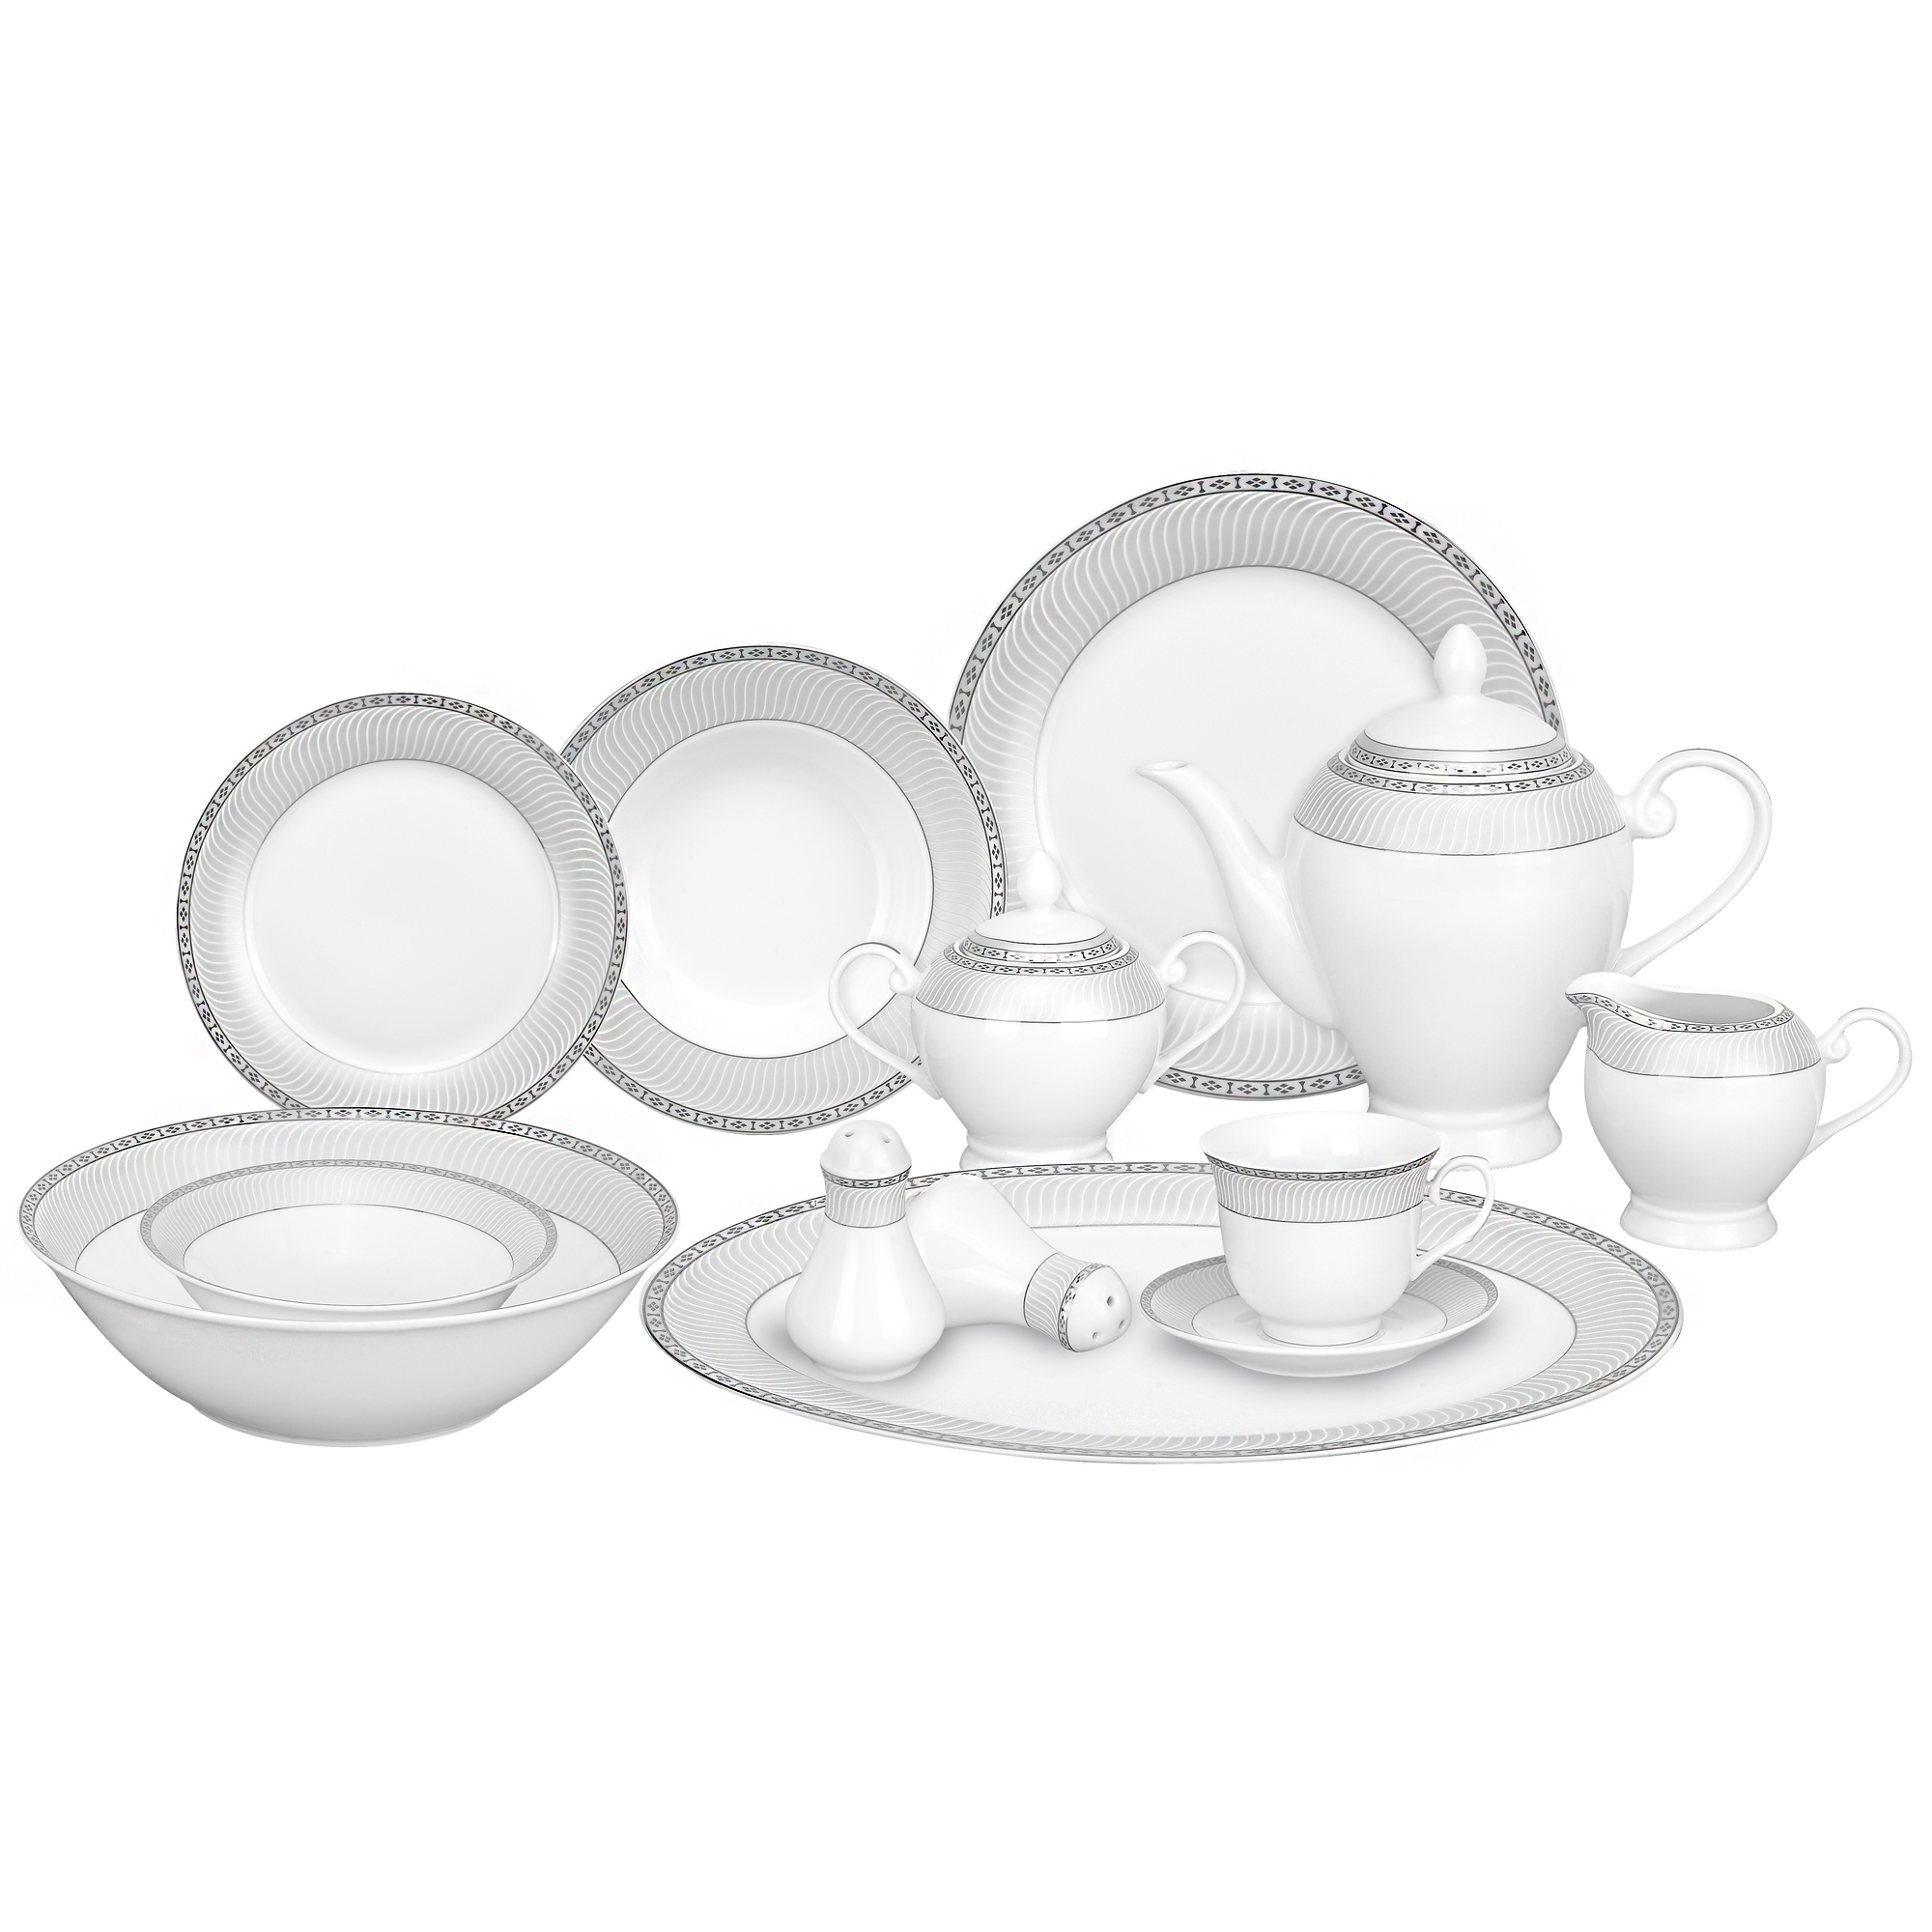 Elegant White u0026 Silver Porcelain Dinnerware Set  sc 1 st  Tronix Country : white and silver dinnerware sets - Pezcame.Com